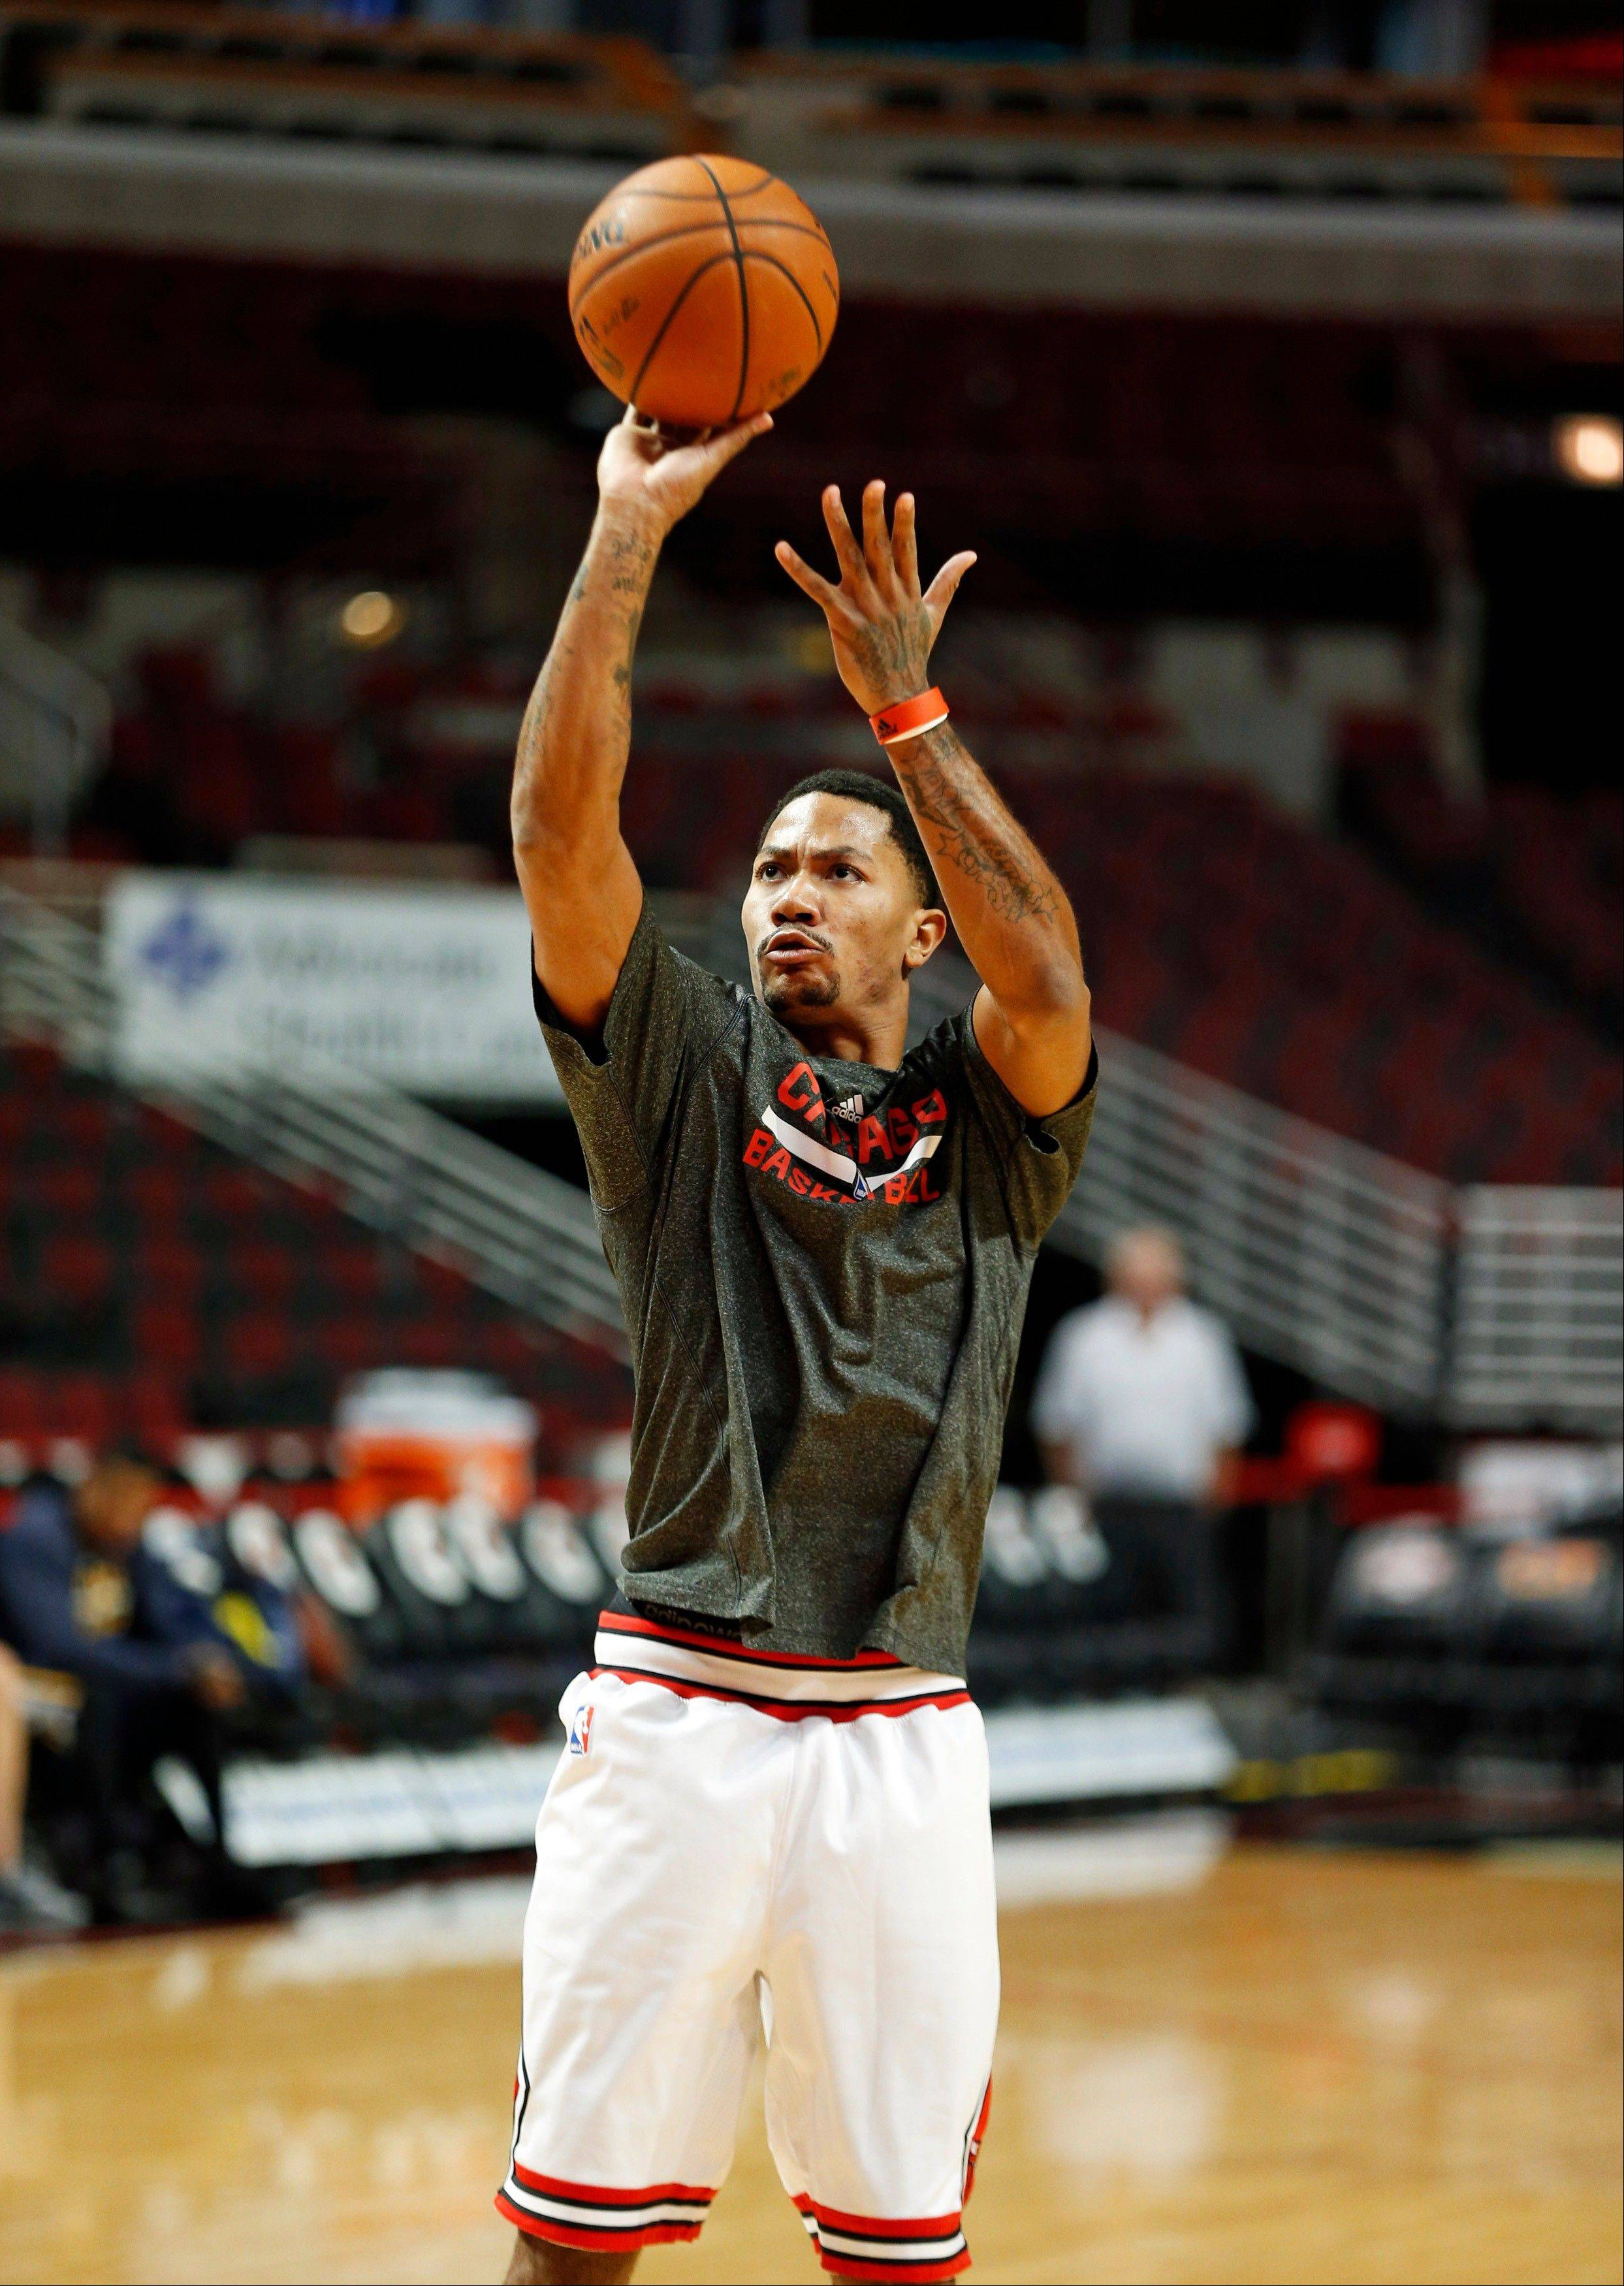 Chicago Bulls guard Derrick Rose says he's ready to play this weekend, but the Bulls may be more cautious. The Bulls play at Toronto on Friday, then host Indiana on Saturday.